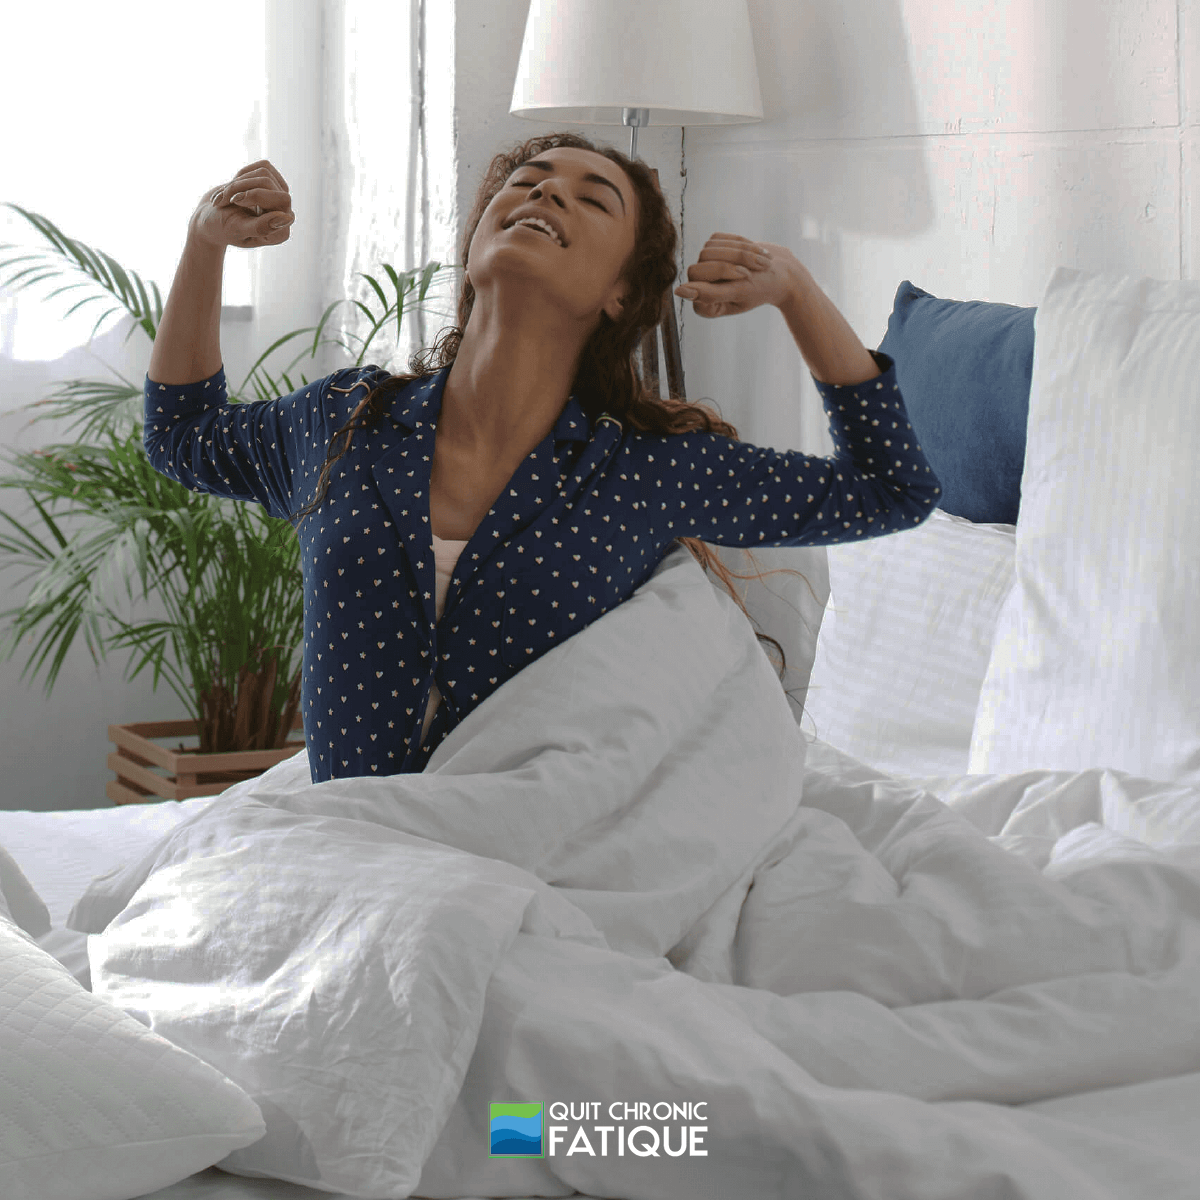 7-Adrenal-Fatigue-Sleep-Tips-To-Help-You-Feel-More-Rested